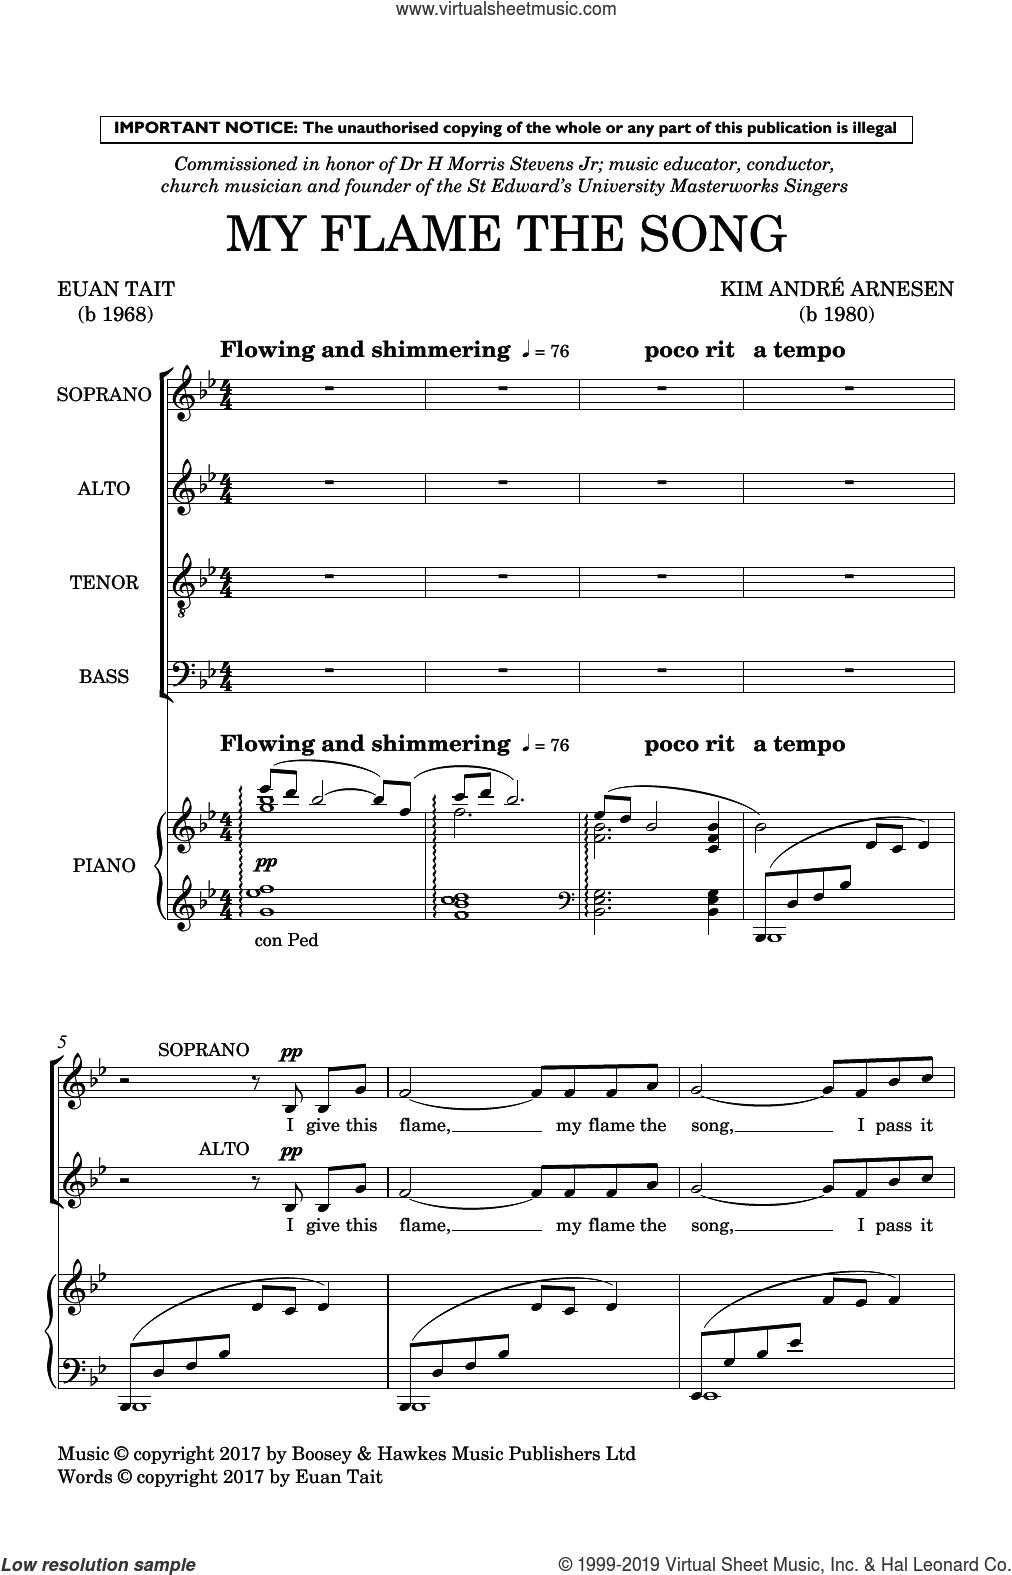 My Flame The Song sheet music for choir (SATB: soprano, alto, tenor, bass) by Kim Andre Arnesen and Euan Tait, intermediate skill level